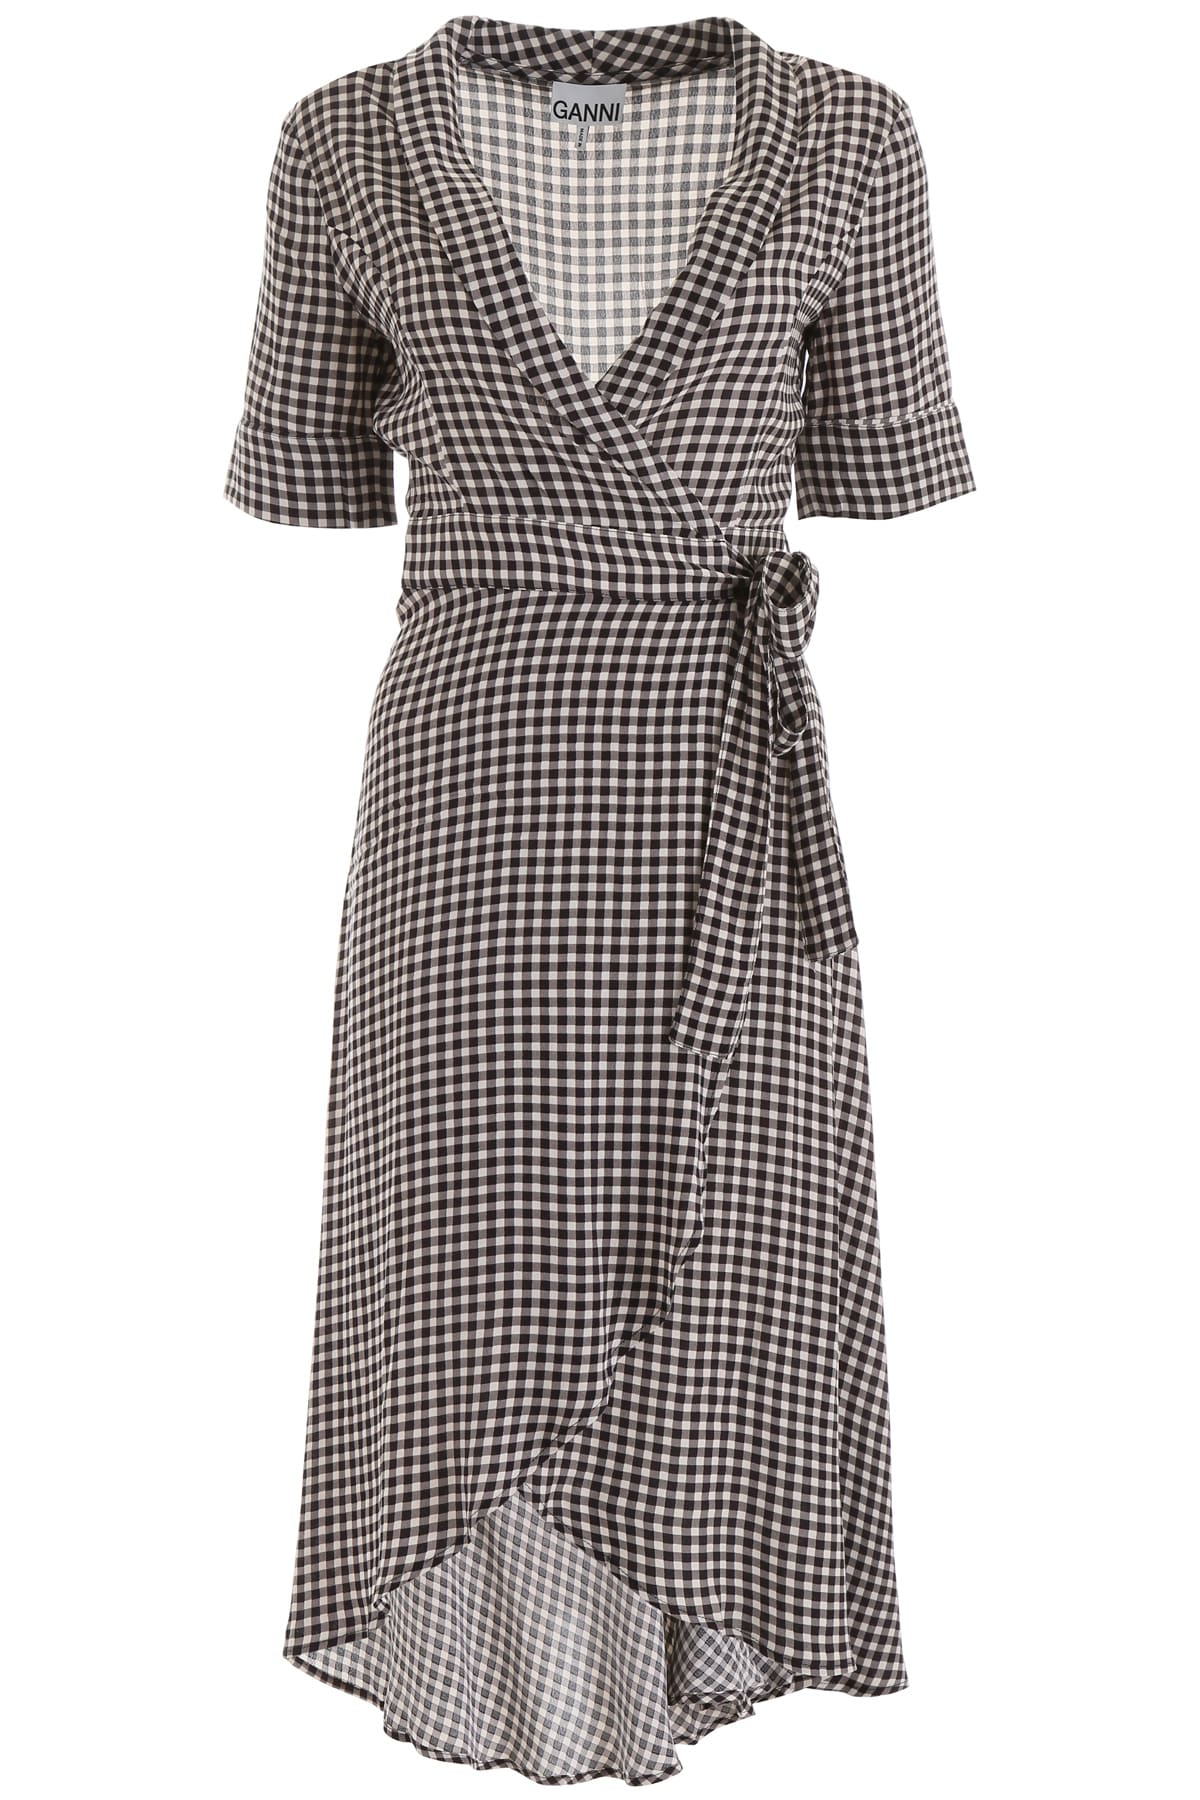 Ganni Vichy Wrap Dress